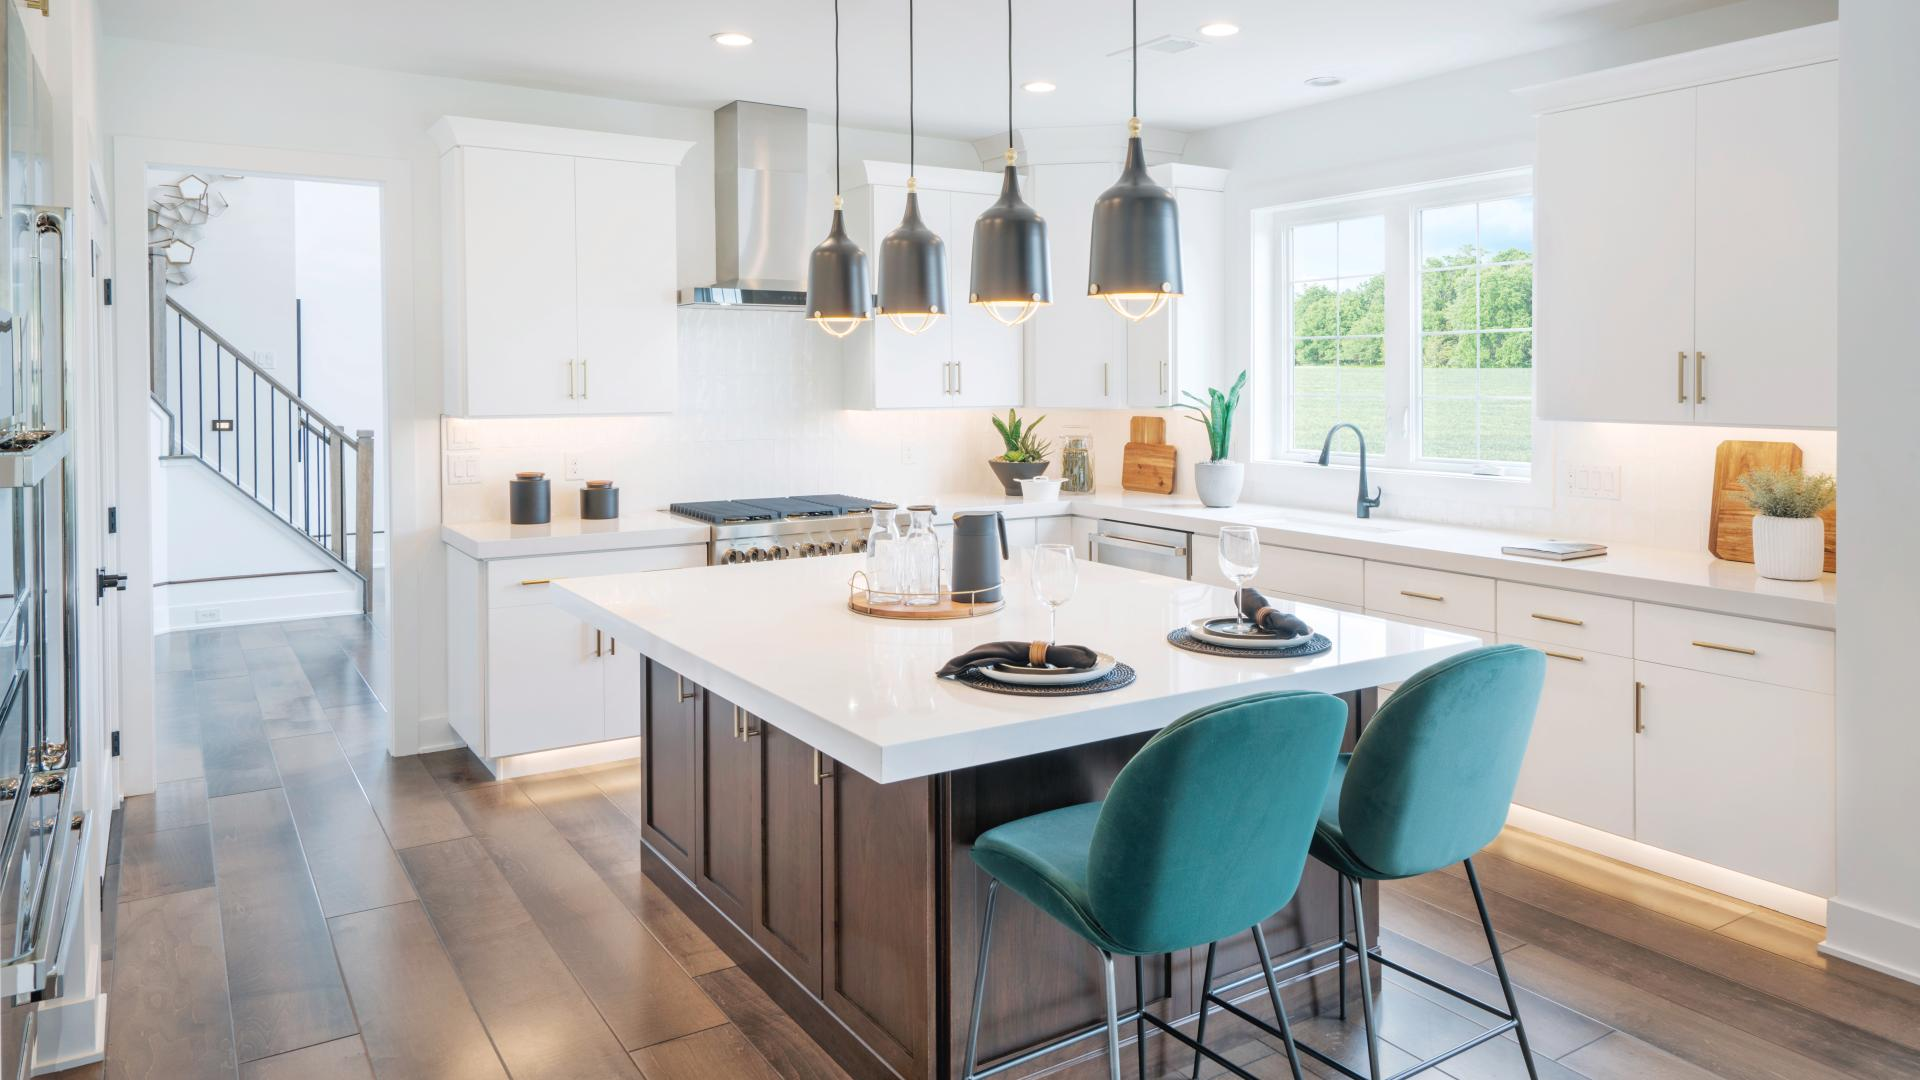 Spacious kitchens with large center island